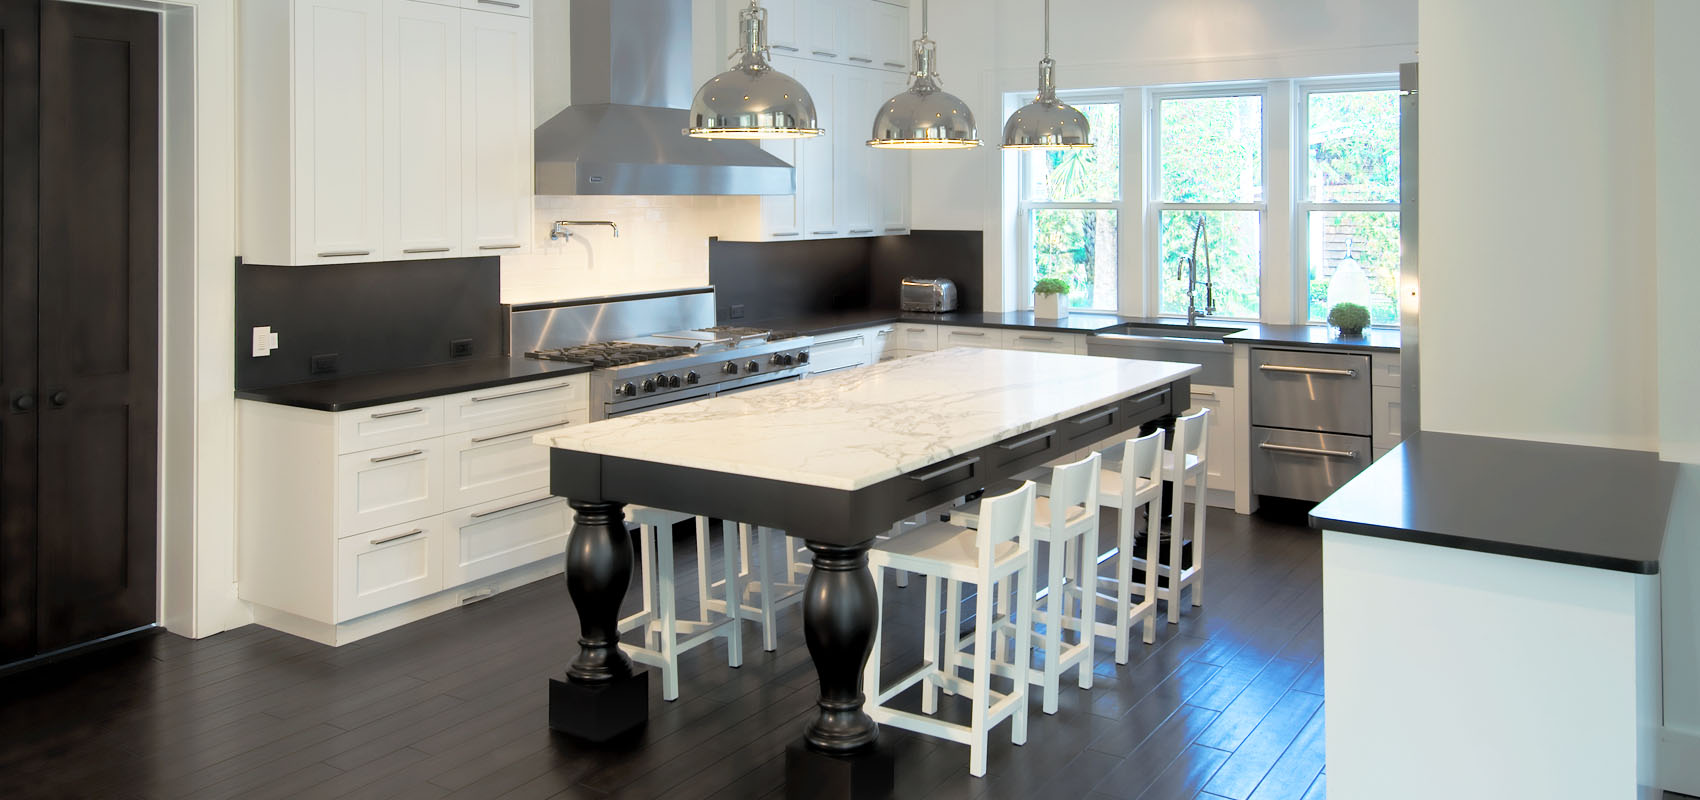 Custom Modern Kitchen Cabinets By River City Cabinetry